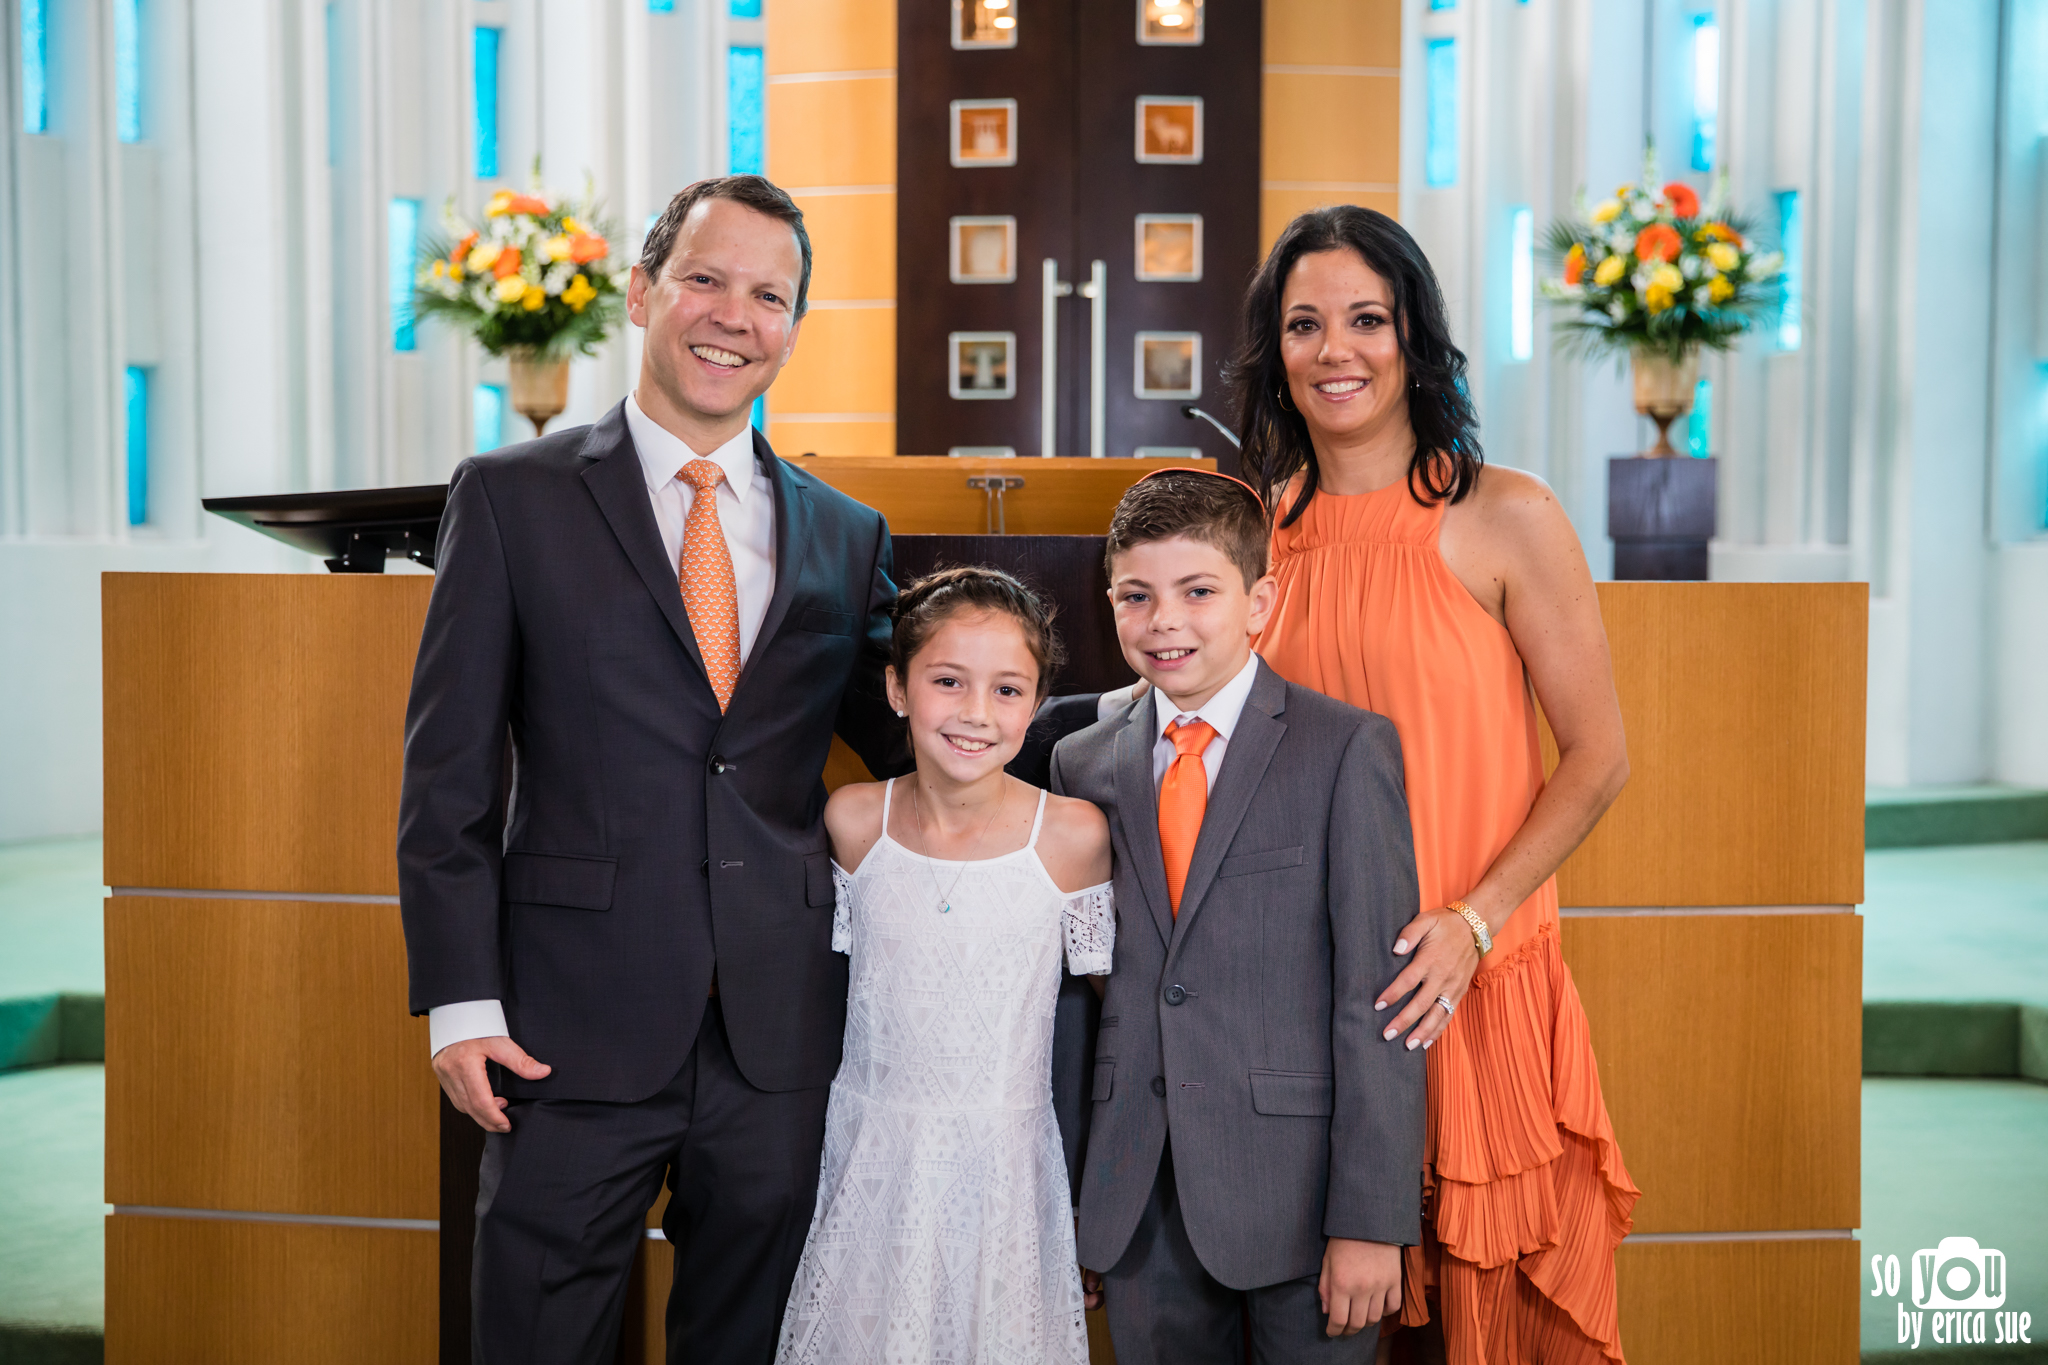 so-you-by-erica-sue-mitzvah-photographer-temple-judea-coral-gables-university-of-miami-hillel-1252.jpg